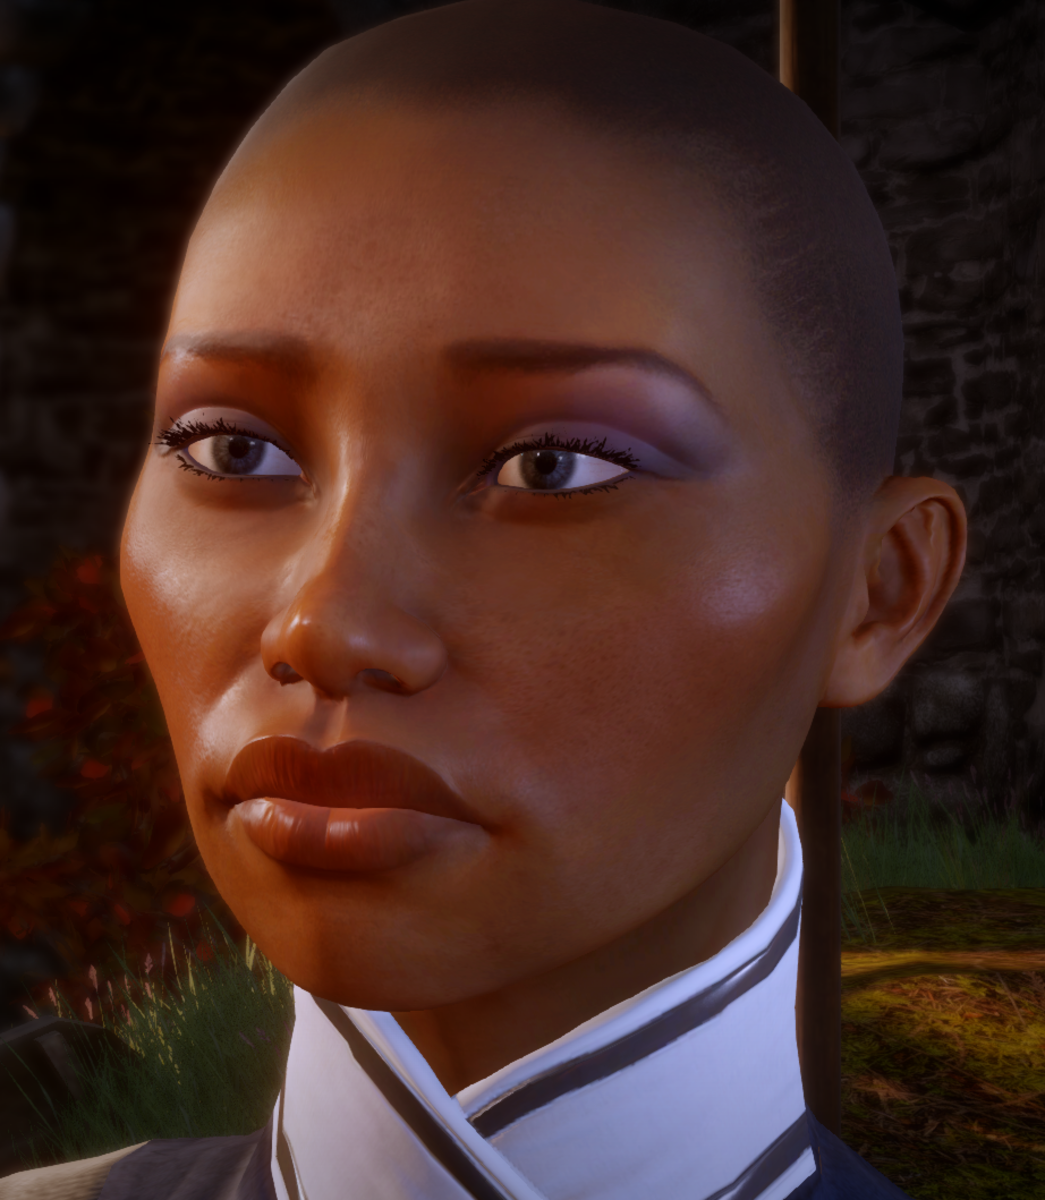 How to Get Maximum Approval From Vivienne in Dragon Age: Inquisition